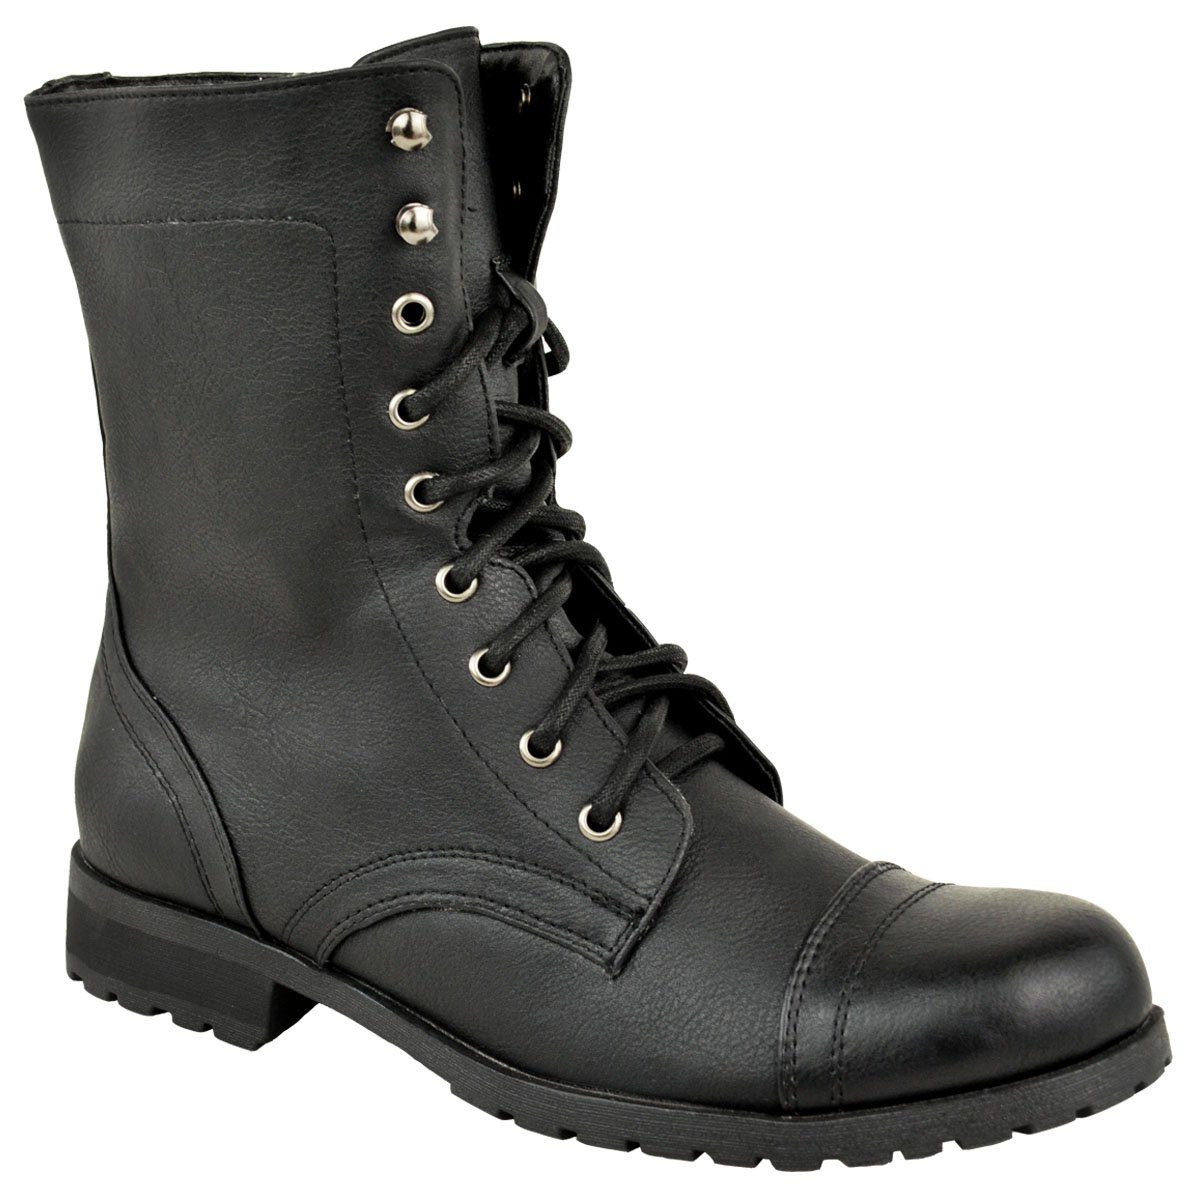 Fashion Thirsty Womens Low Heel Flat Lace up Biker Army Military Combat Style Ankle Boots Size 8